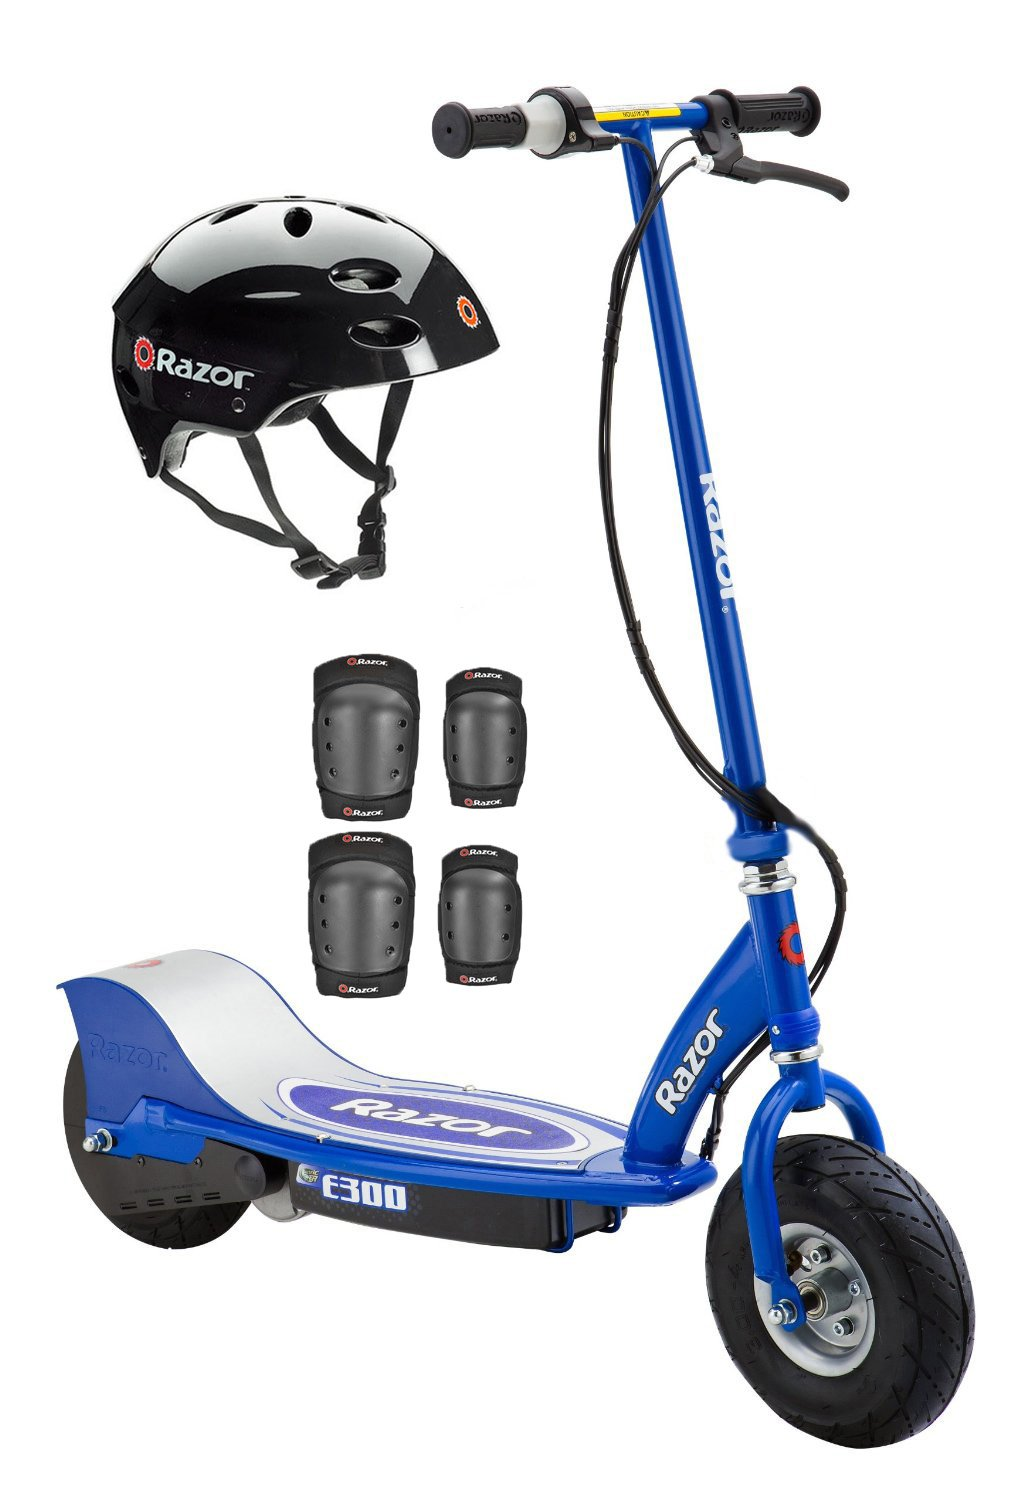 Razor E300 Electric Motorized Scooter (Blue) with Helmet, Elbow & Knee Pads by